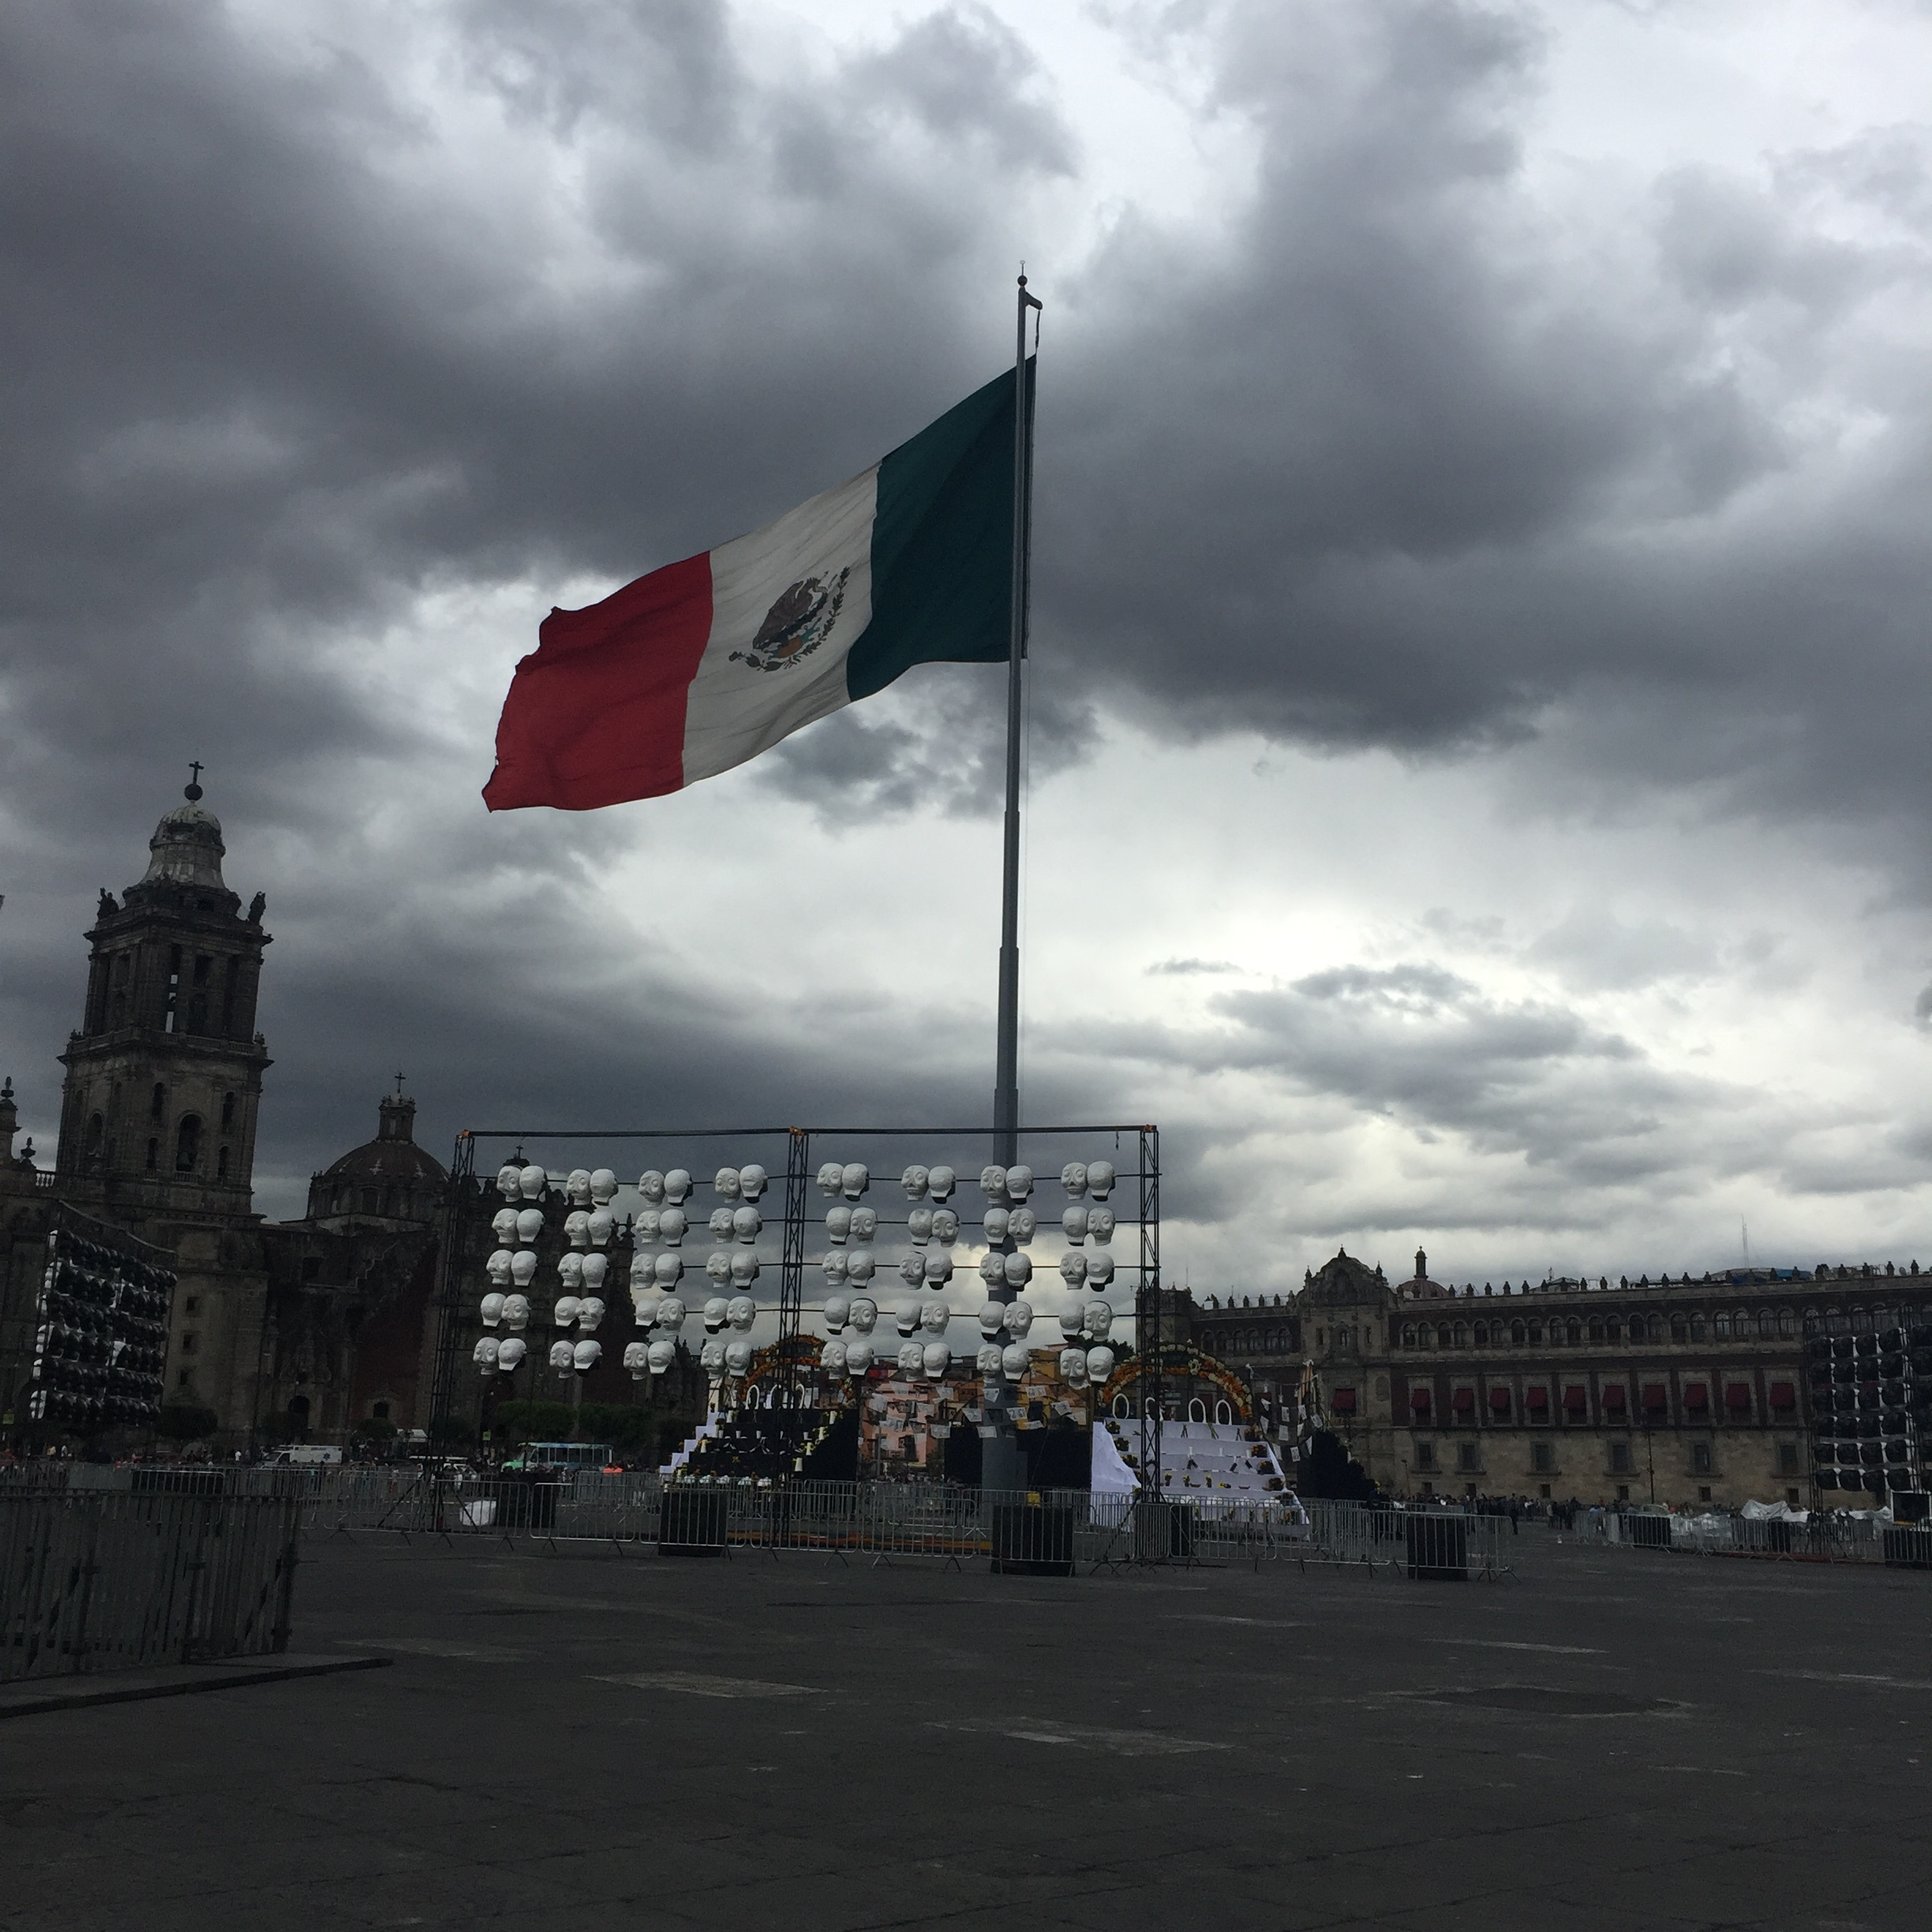 Zócalo main square